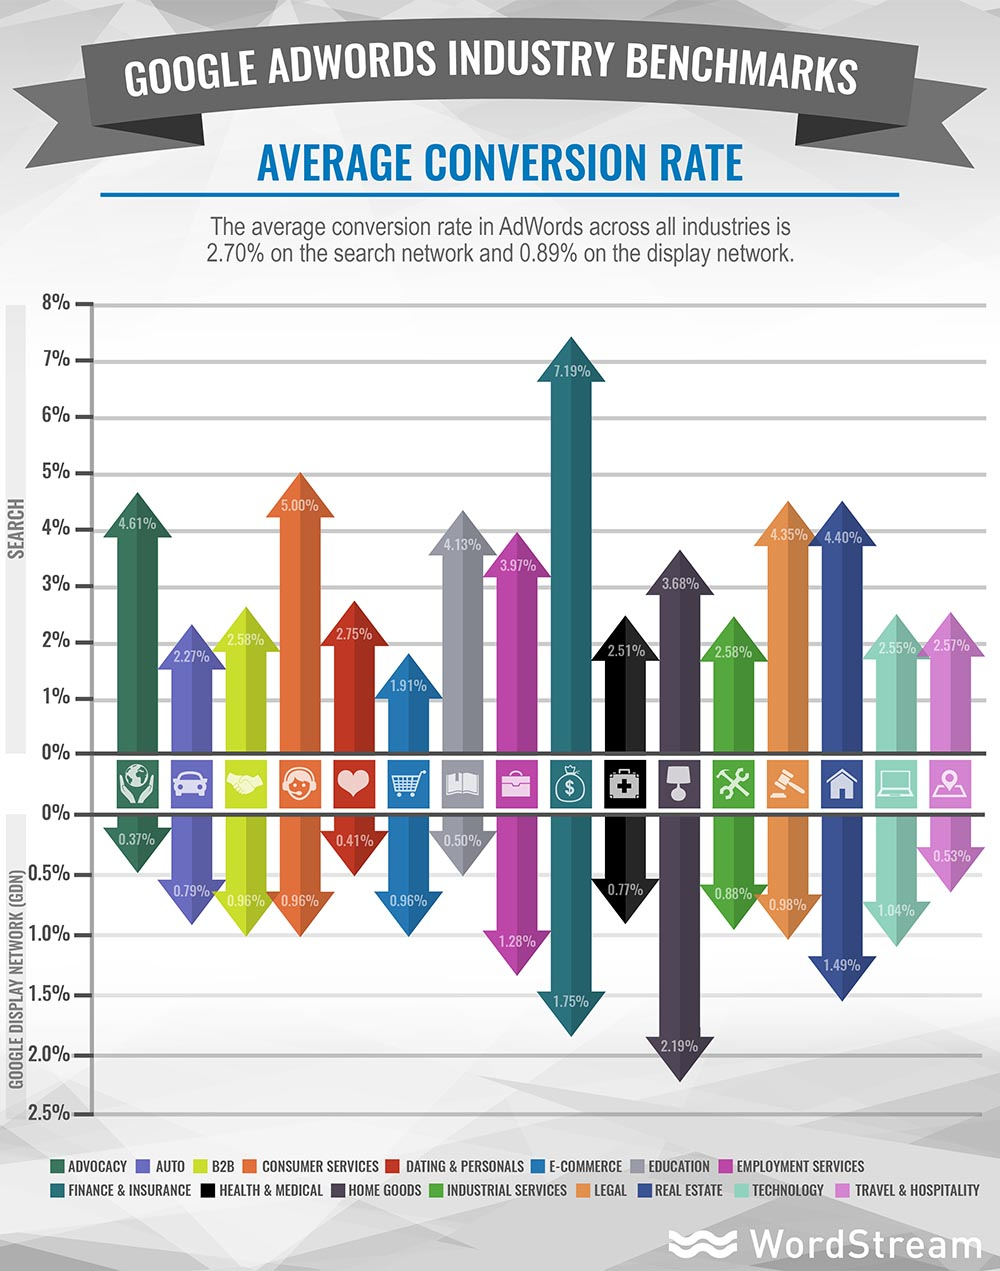 adwords-industry-benchmarks-average-conversion-rate.jpg